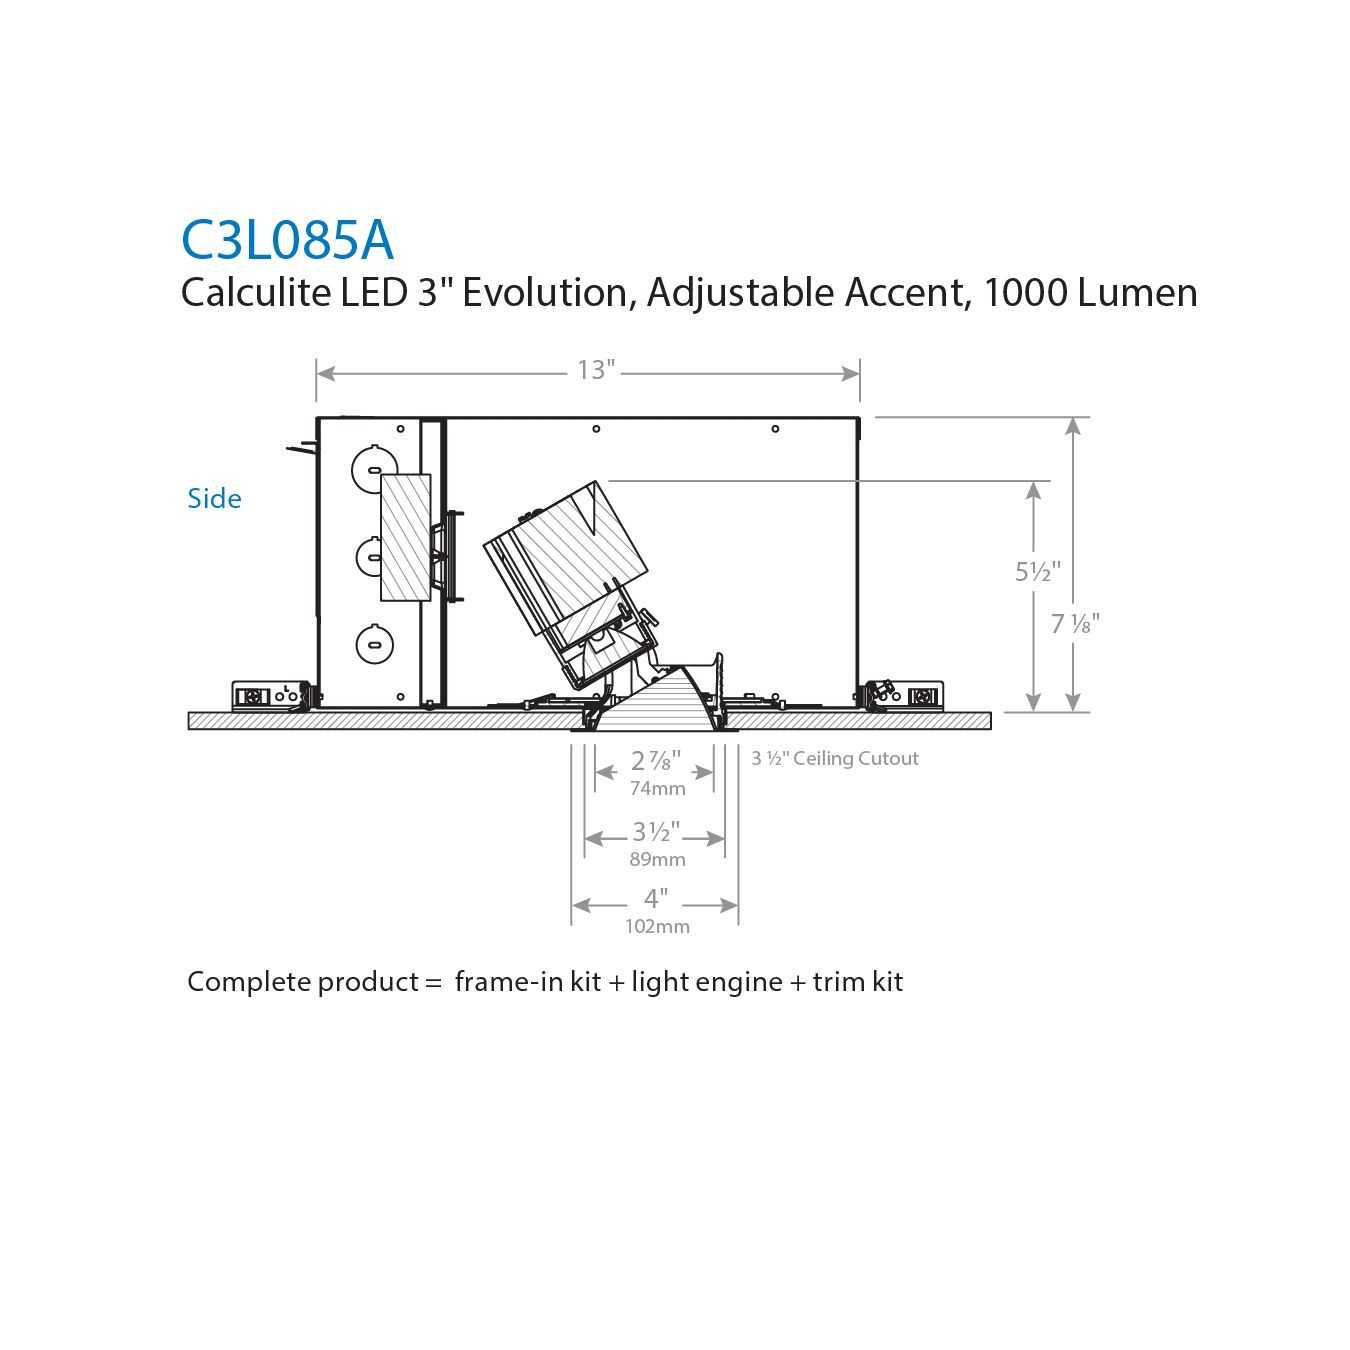 Lightolier Dimmer Wiring Diagram 1000 Automotive Chandelier C3l085a Calculite Led 3 Evolution Adjustable Accent Rh Alconlighting Com Light Switch